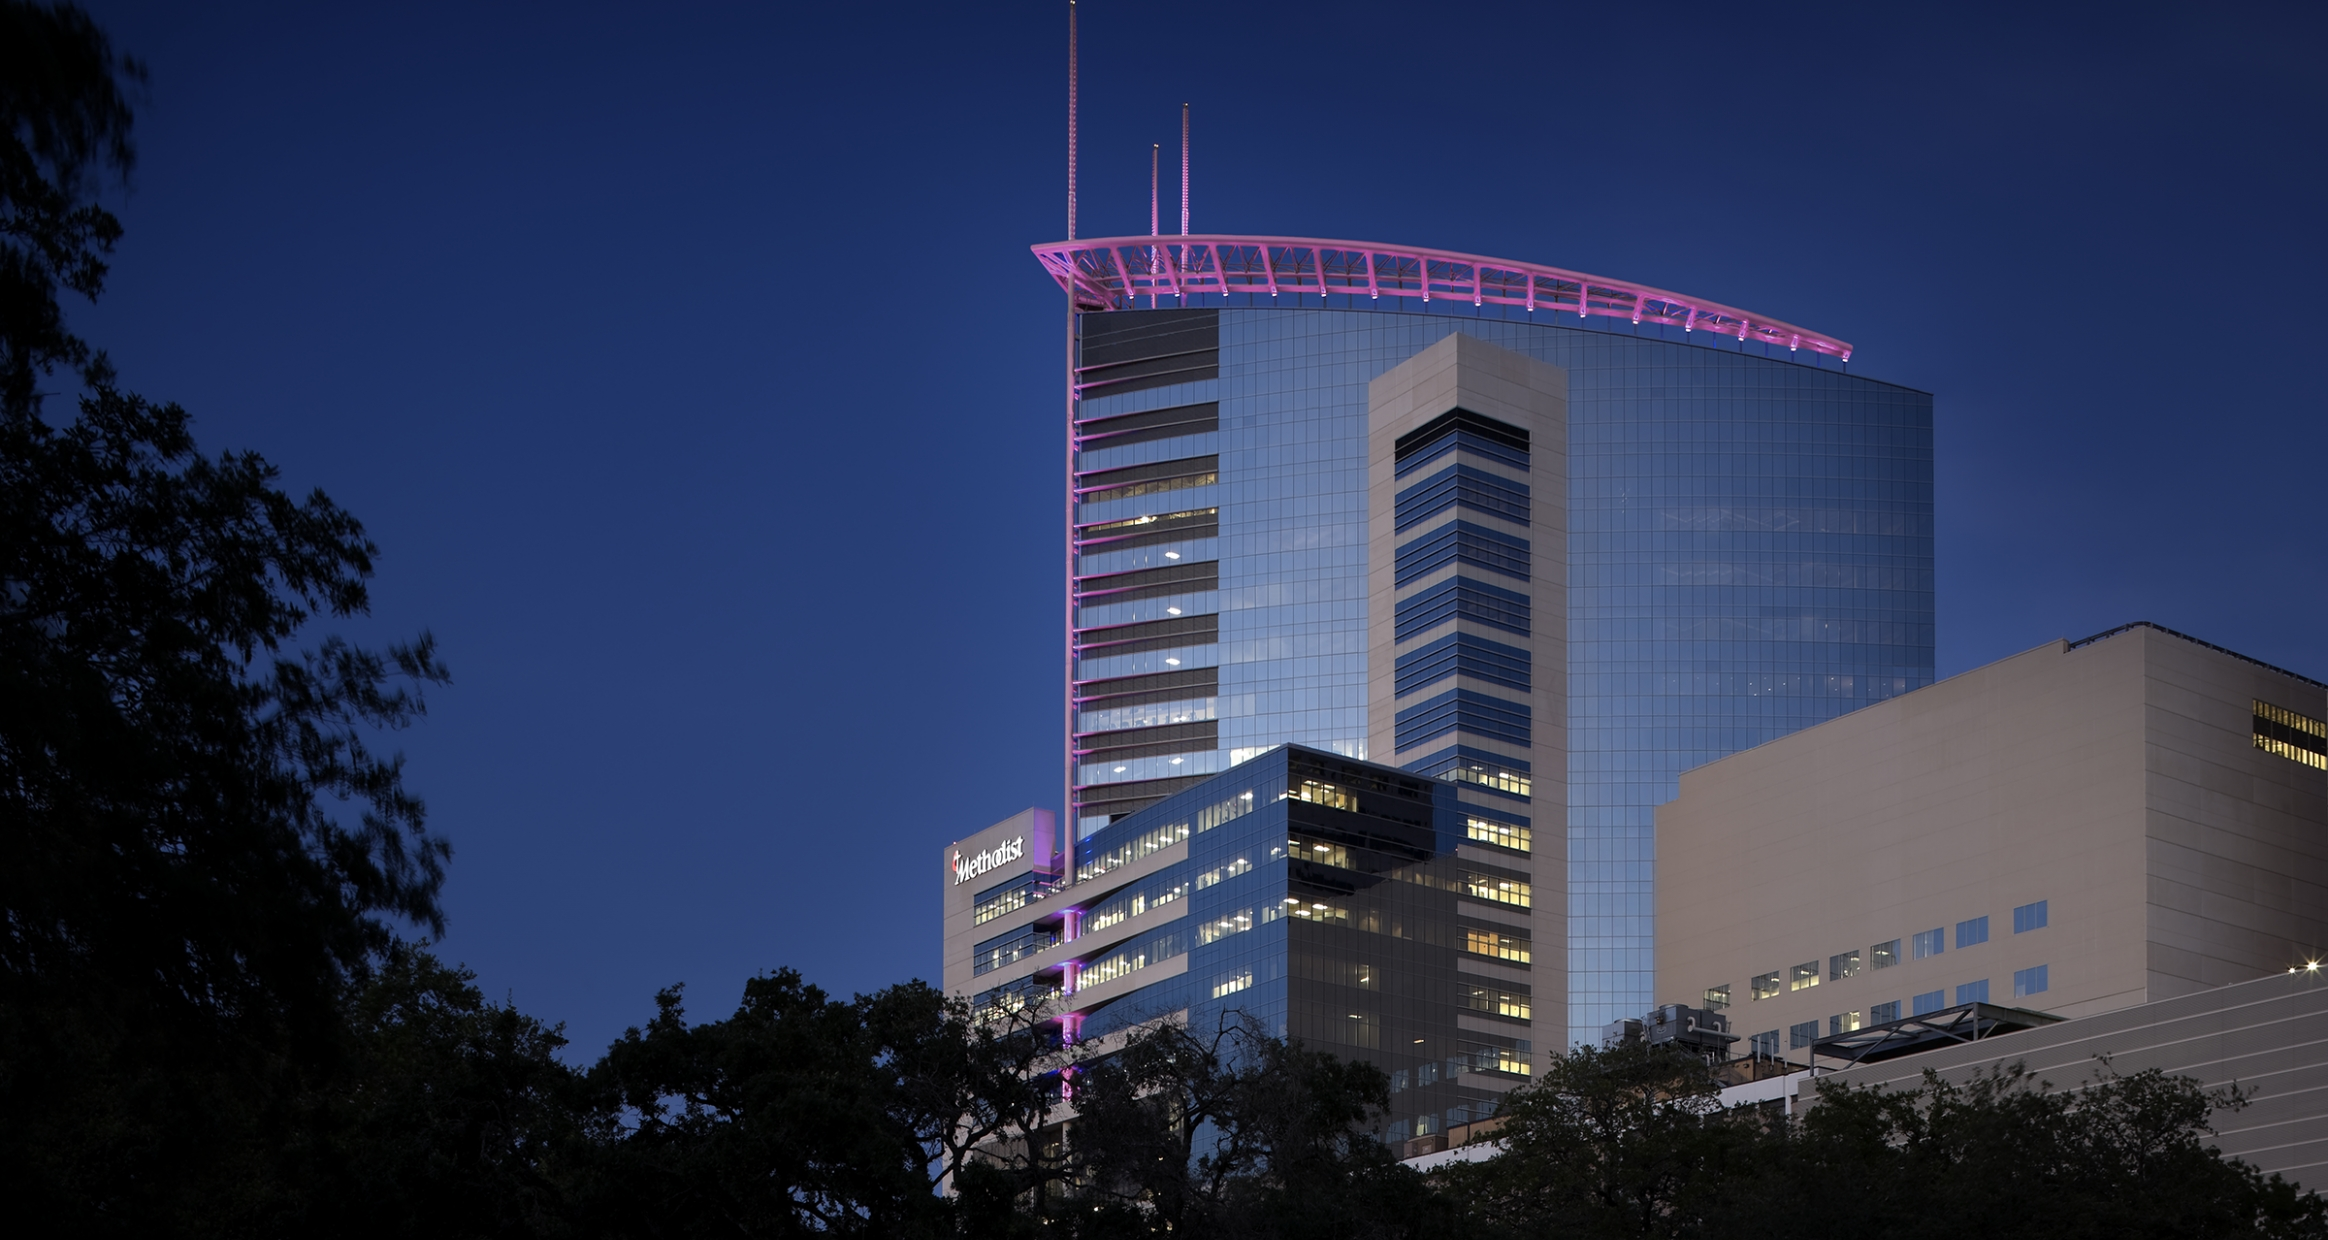 Houston Methodist Outpatient Tower at dusk